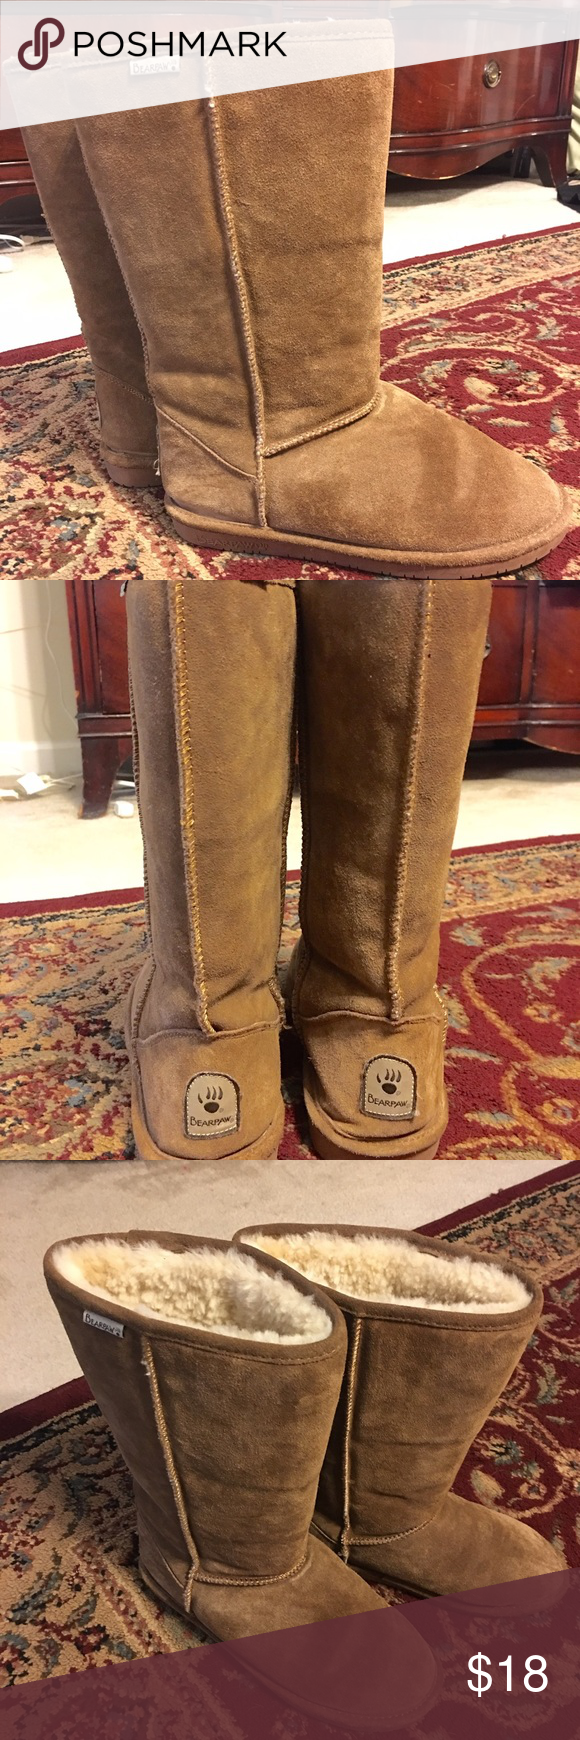 Bear paw women's boot Bear Paw's women's boot - offers a style that's well paired with denim, a casual skirt or a country dress.  Suede boots with synthetic soles - the inner boot has a sheepskin and wool blend lining very warm and comfortable.  The boots measure approximately 12 inches tall .  Worn only once or twice.  Excellent condition!! BearPaw Shoes Winter & Rain Boots